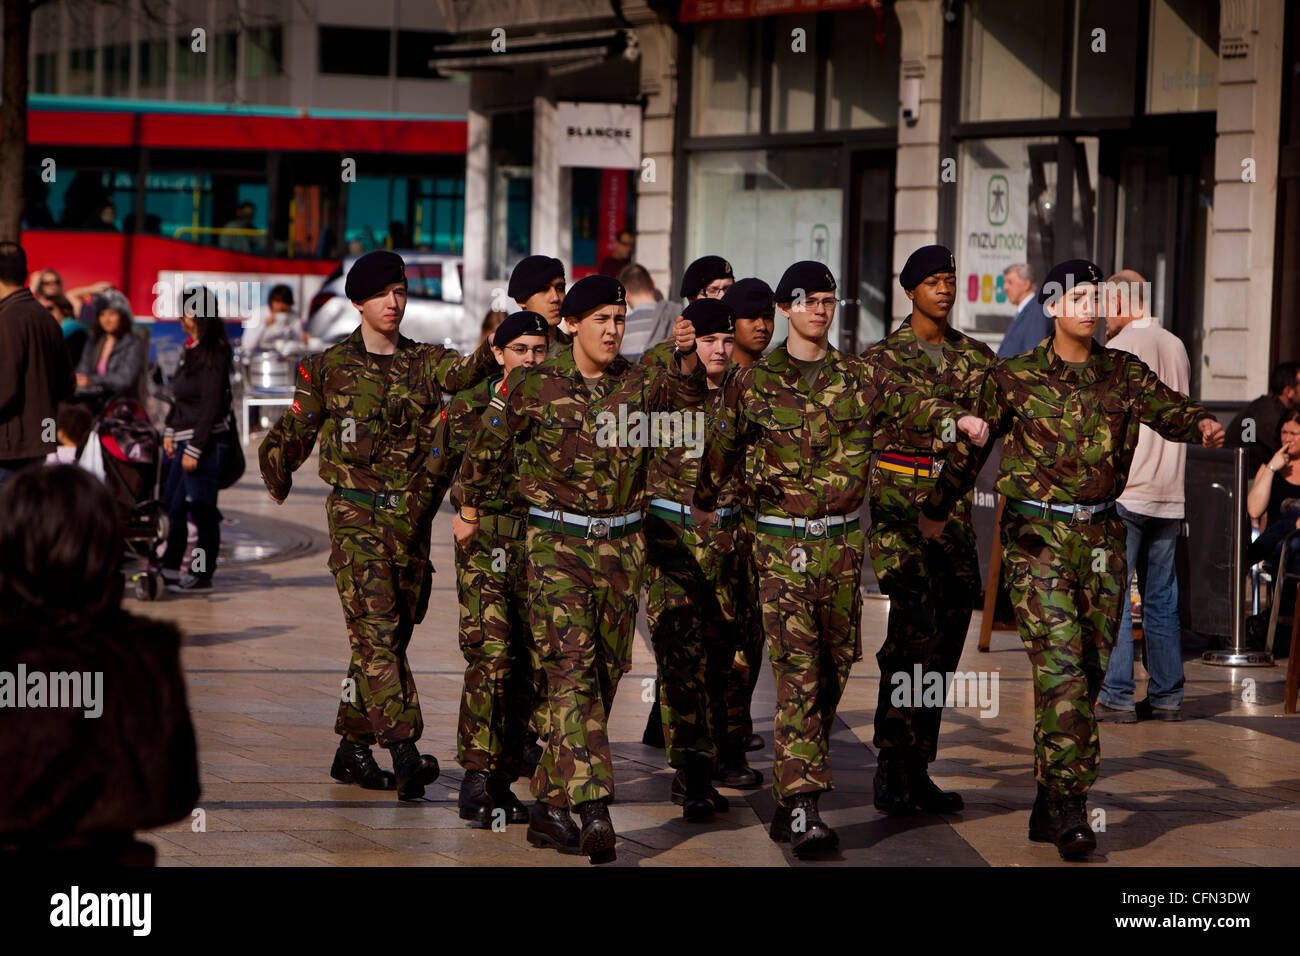 Troops from the Territorial Army regiment The Royal Yeomanry marching through the streets of Hammersmith - Stock Image